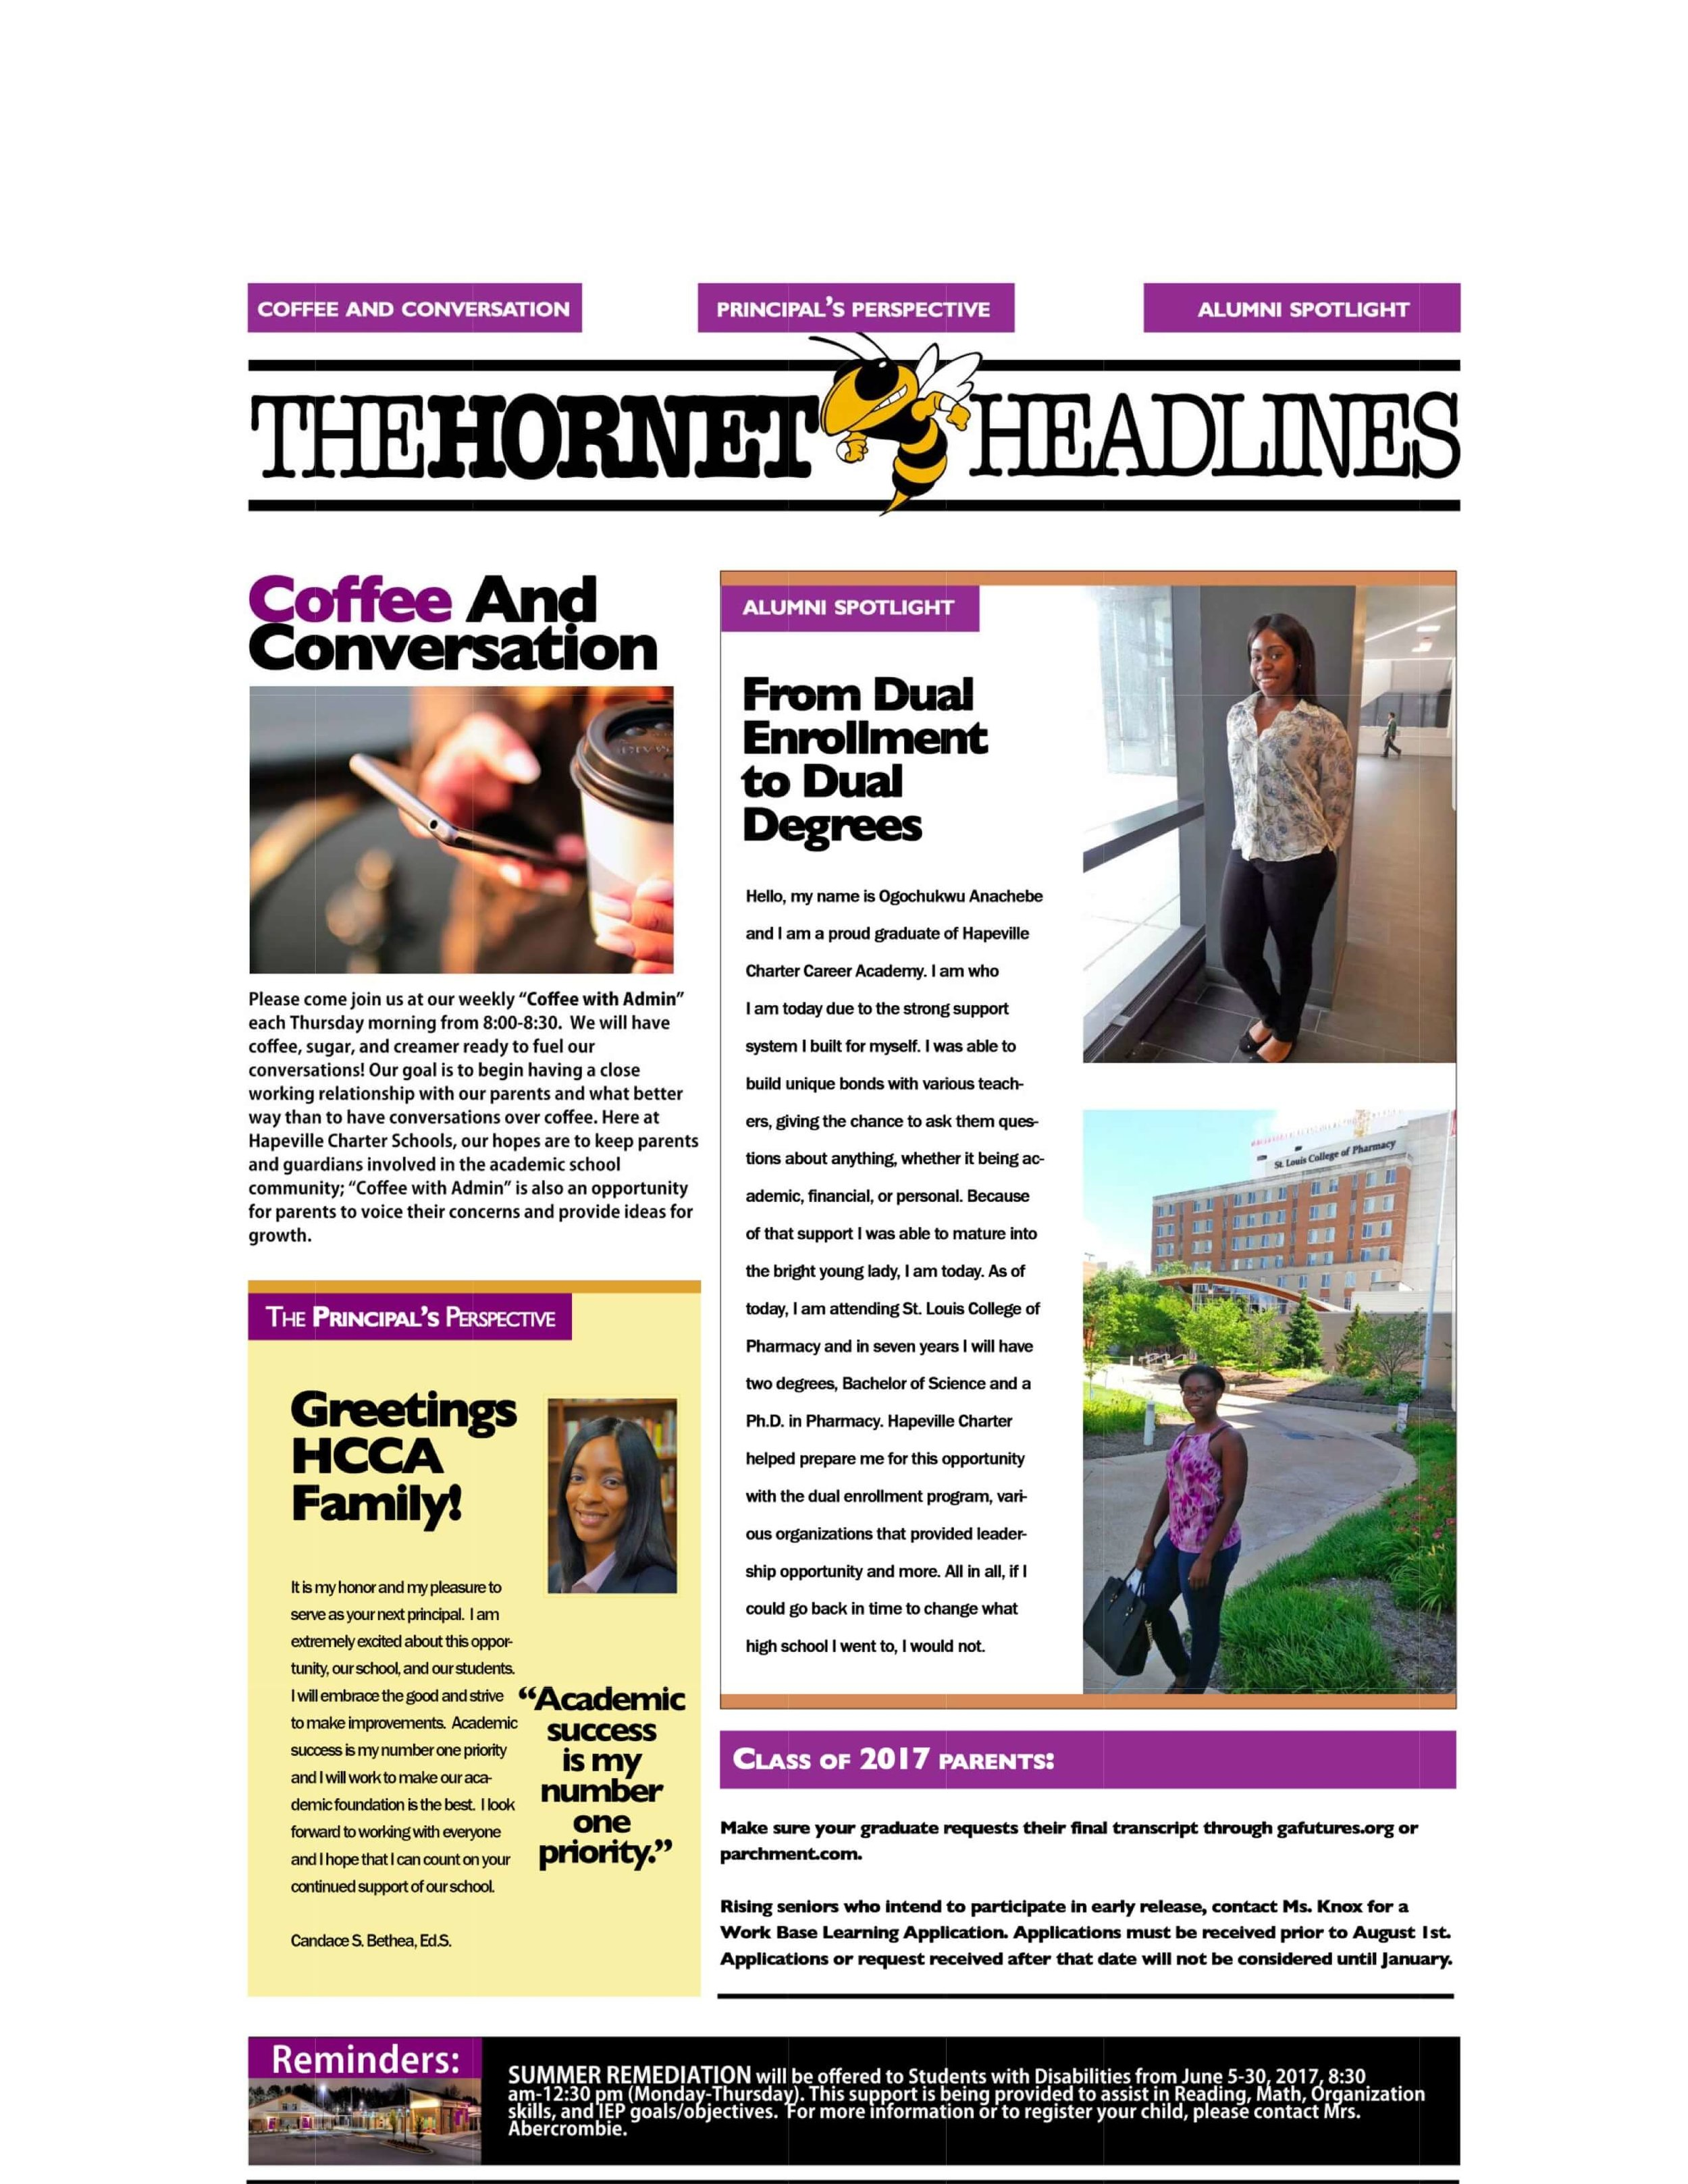 Newsletter Imagehornet-headlines-6-5.jpeg